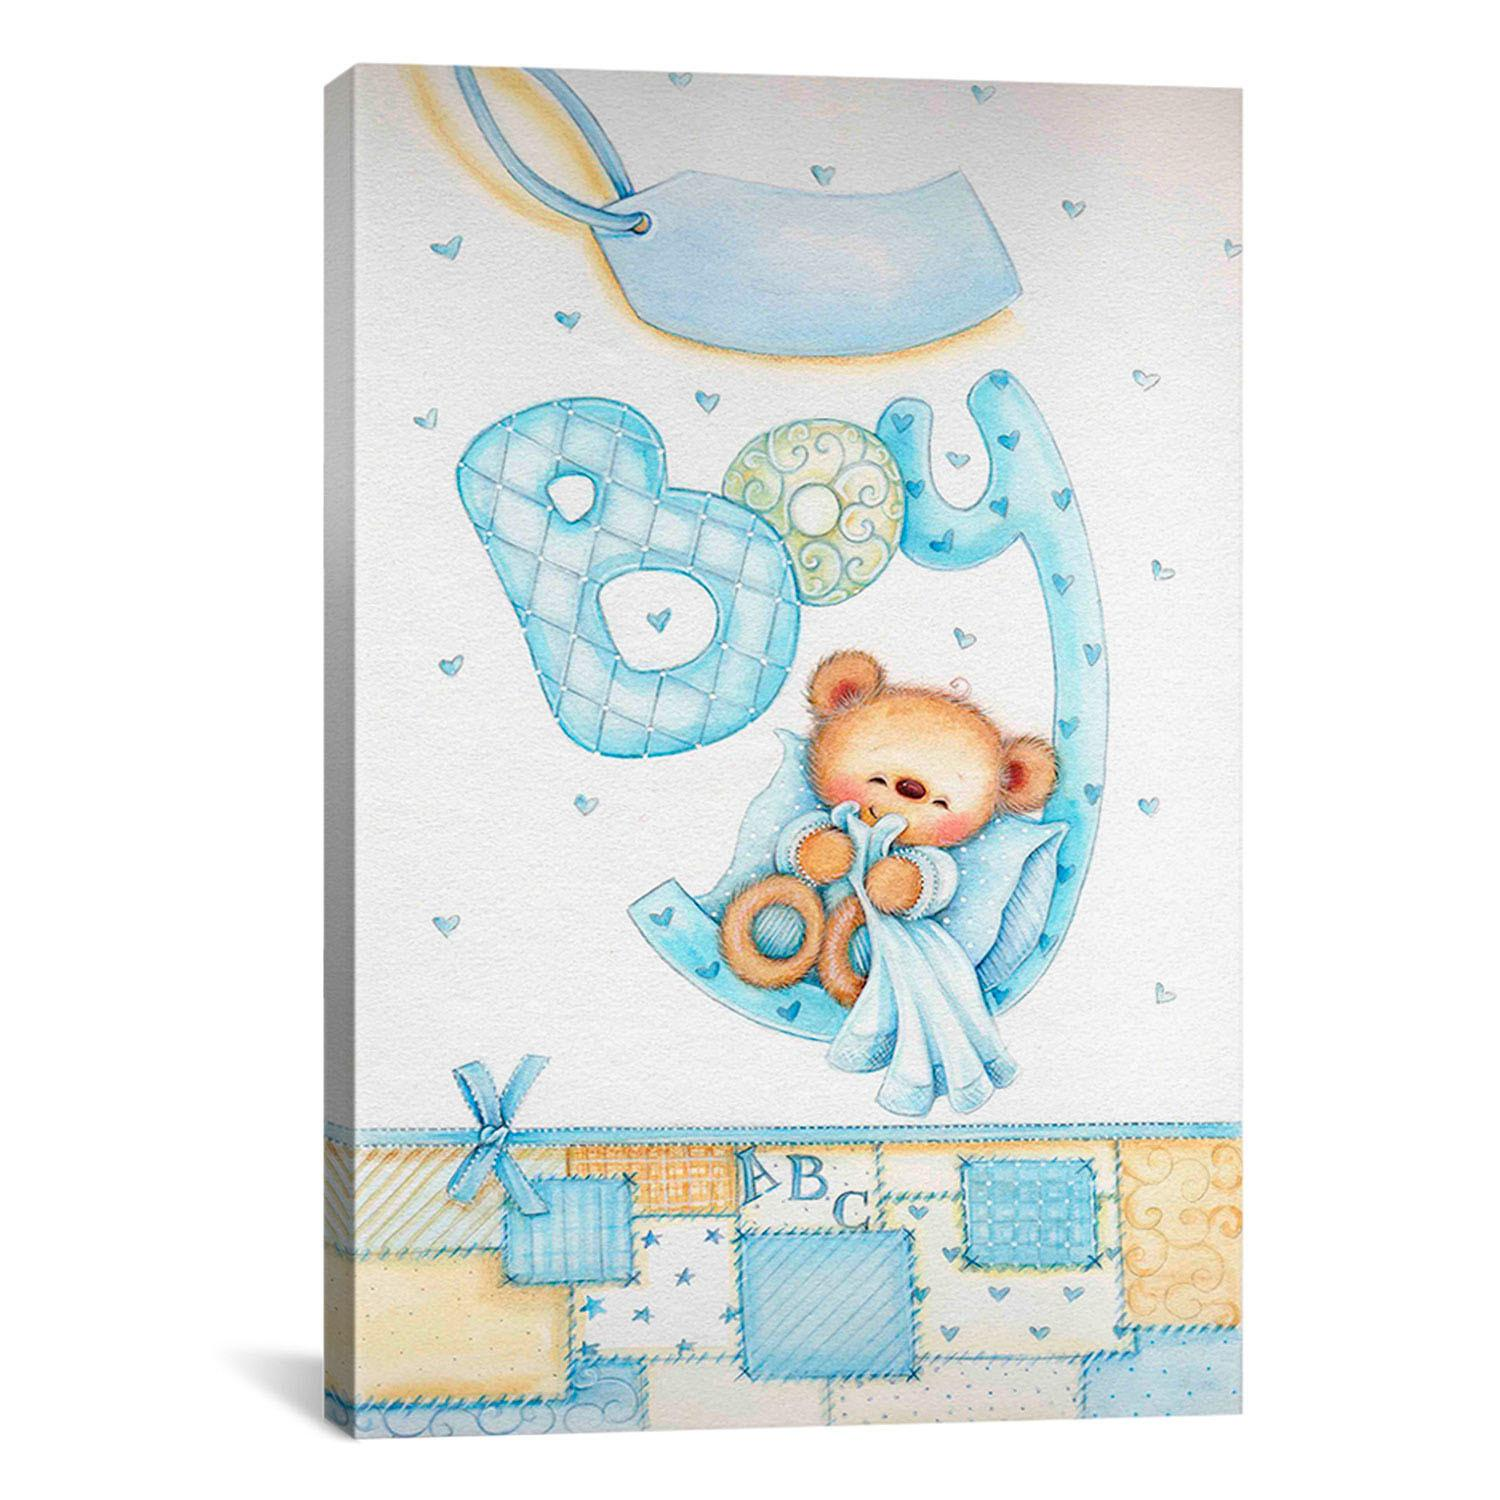 Baby Bear Boys Room Rustic Chic Kids Loversiq